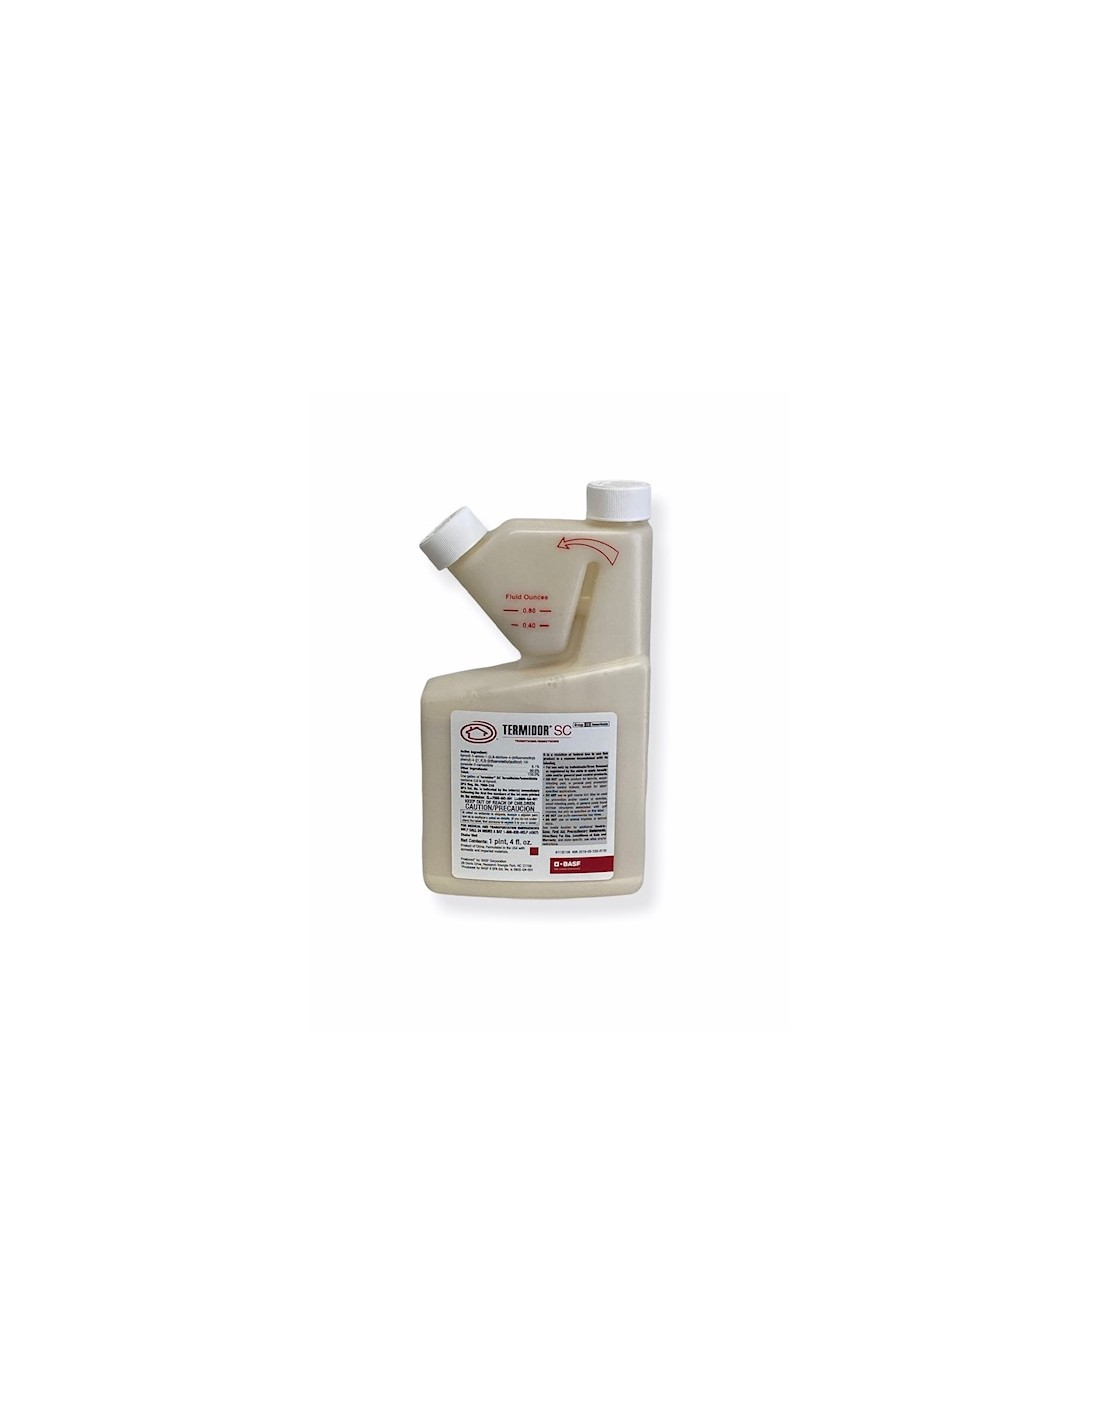 Is it safe to spray termador any where but the earth foundation?